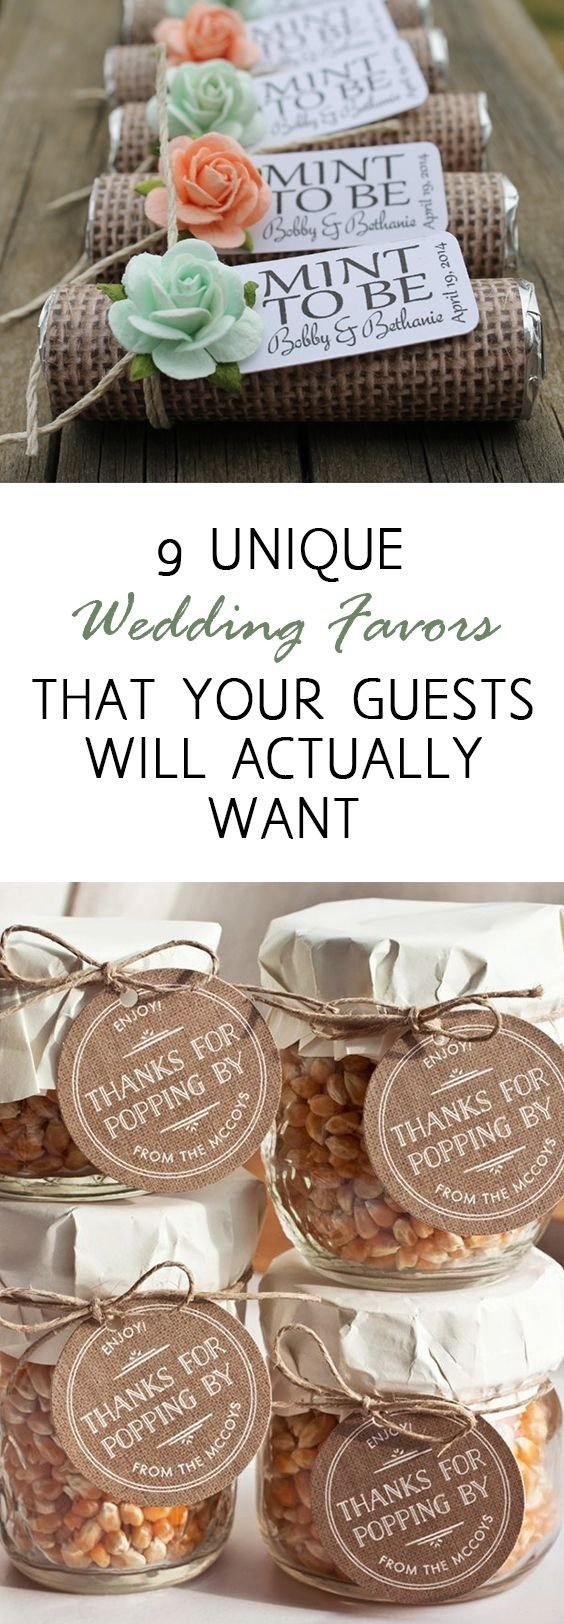 wedding decor : creative wedding decorating ideas on a budget theme